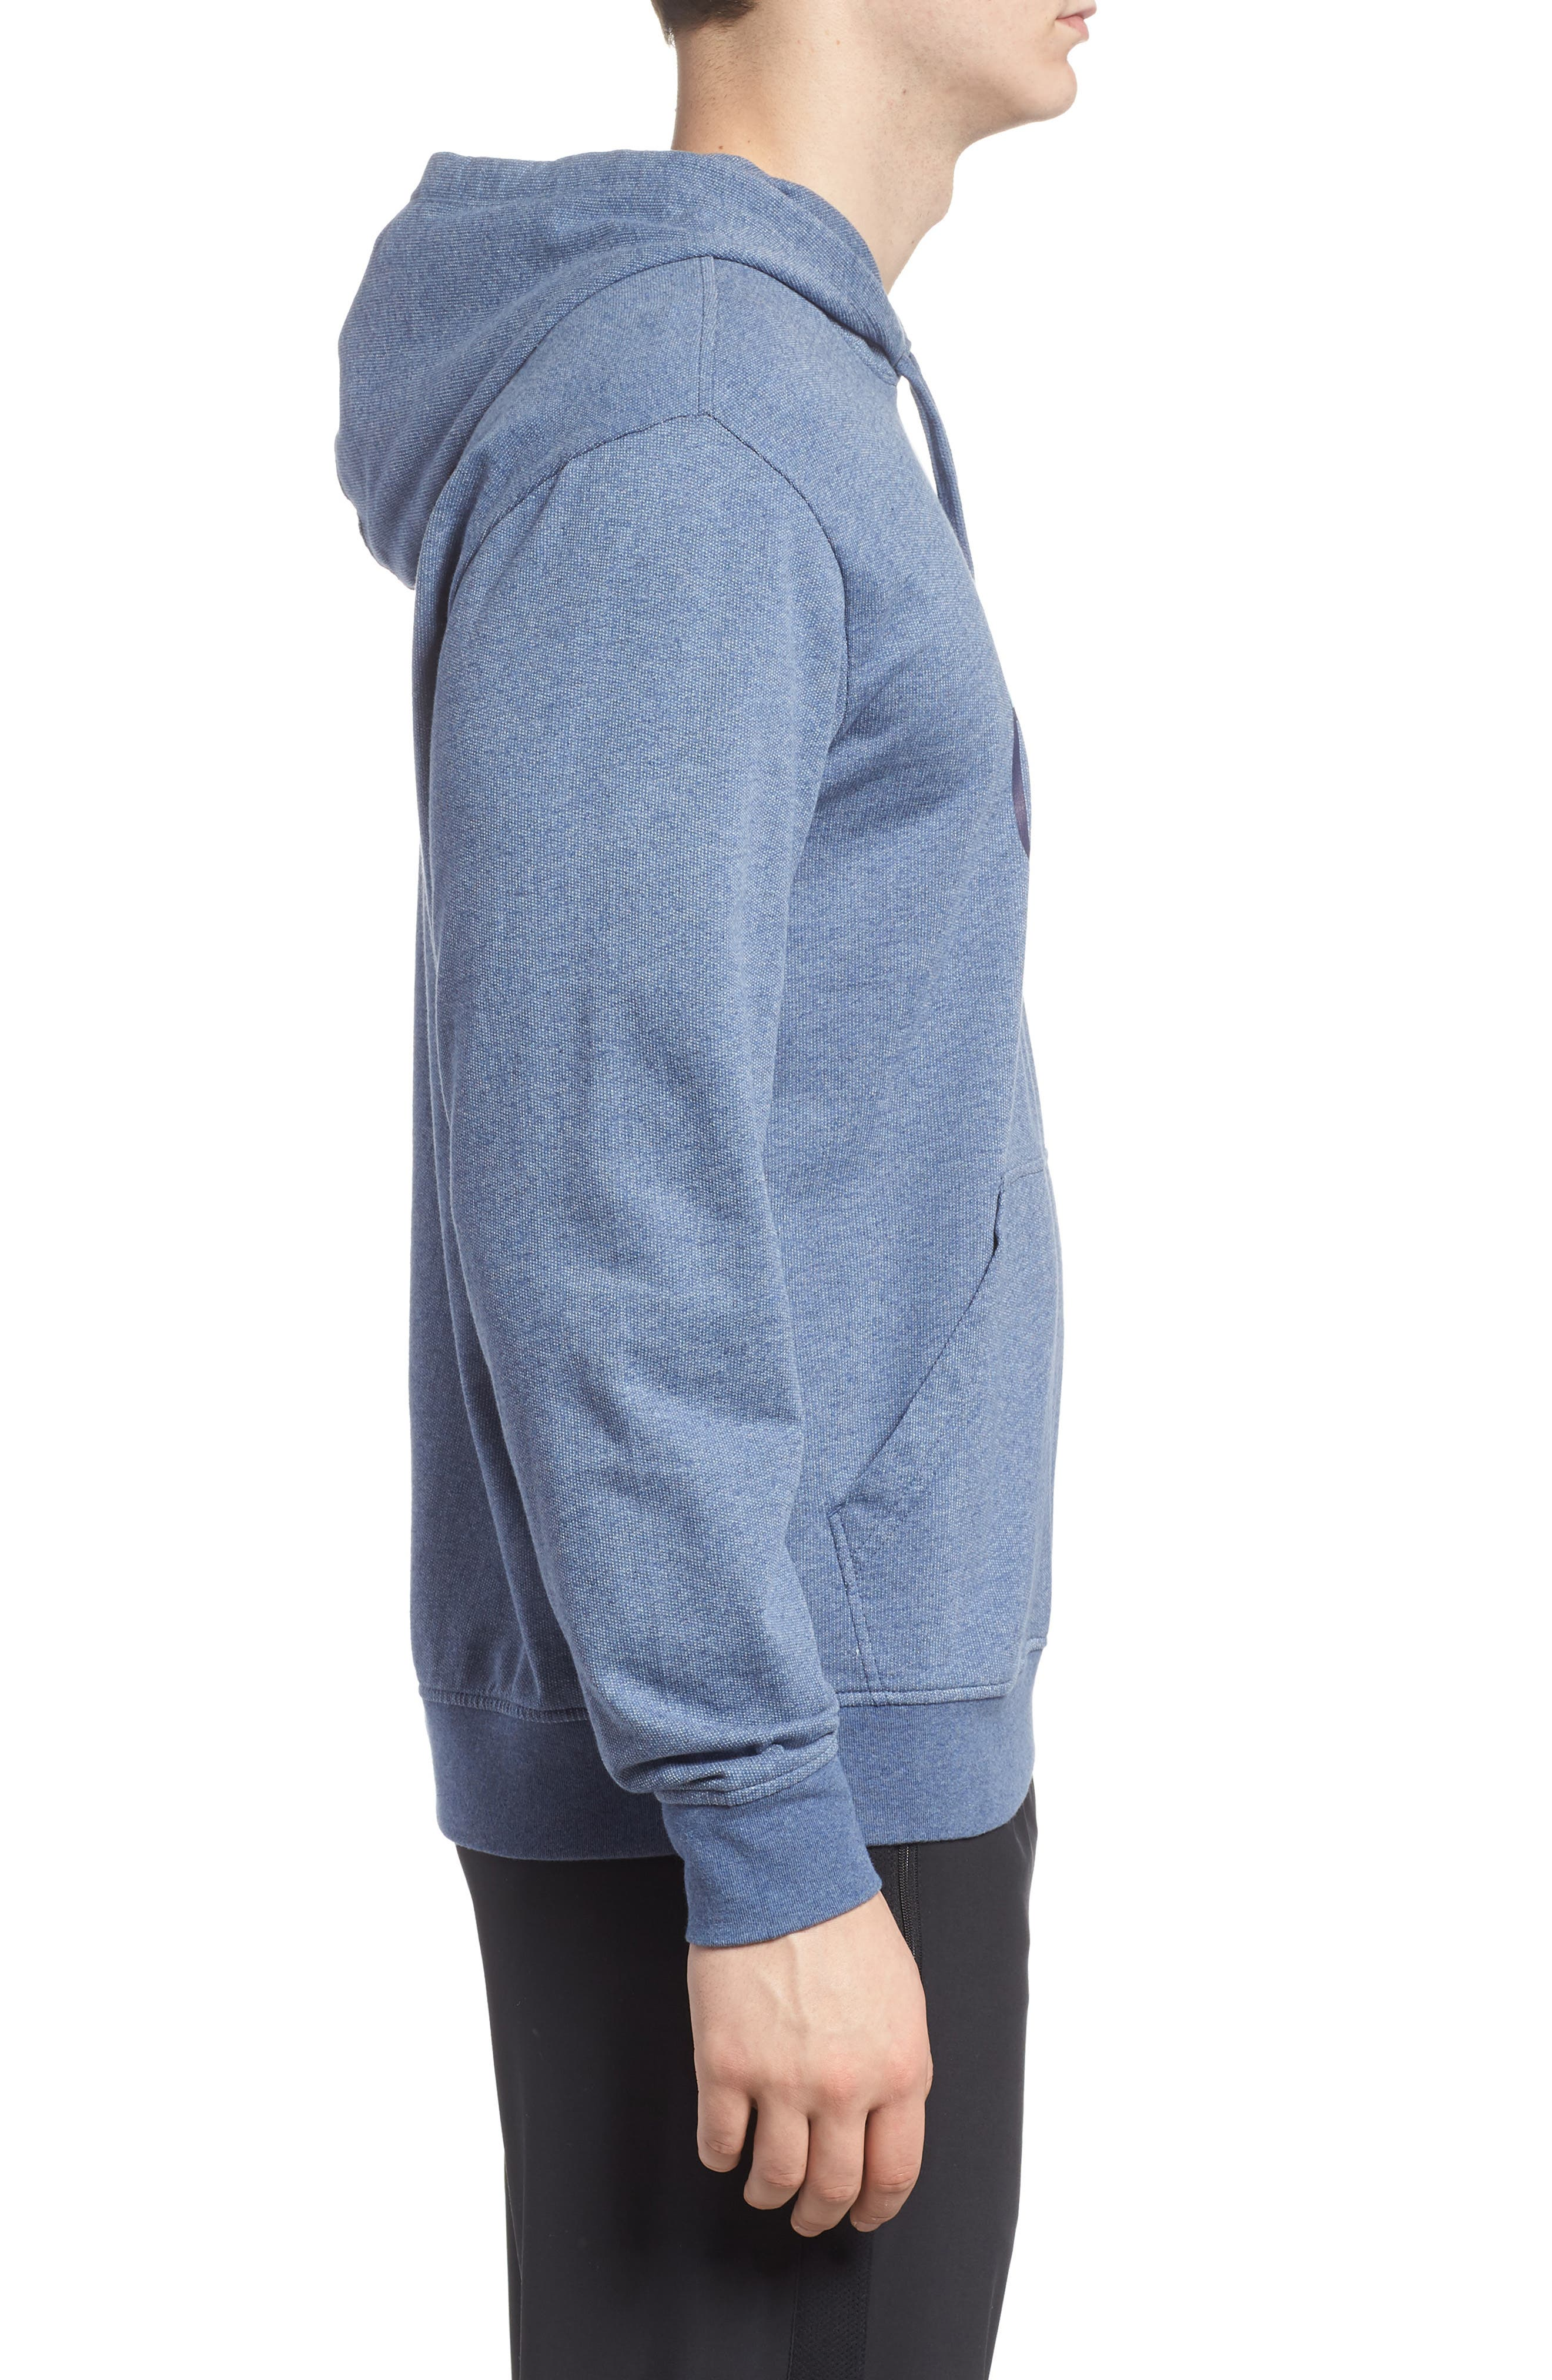 Polycycle Hoodie,                             Alternate thumbnail 3, color,                             Feather Grey